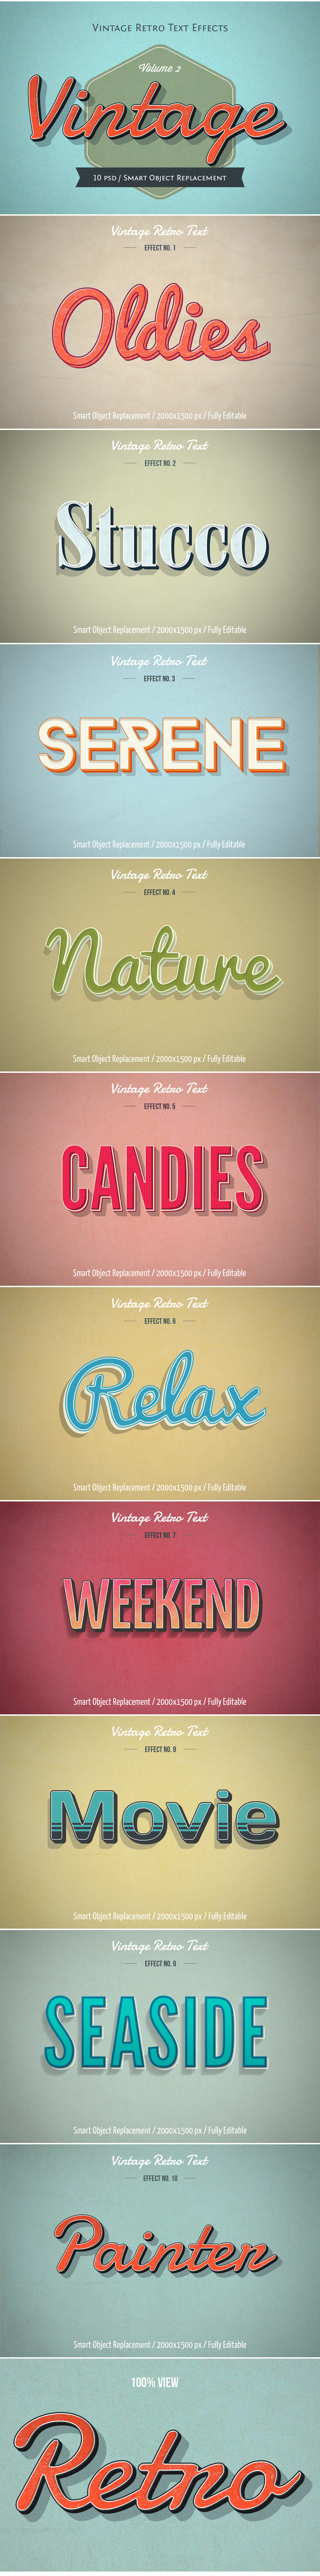 vintage_and_retro_text_effects_878344